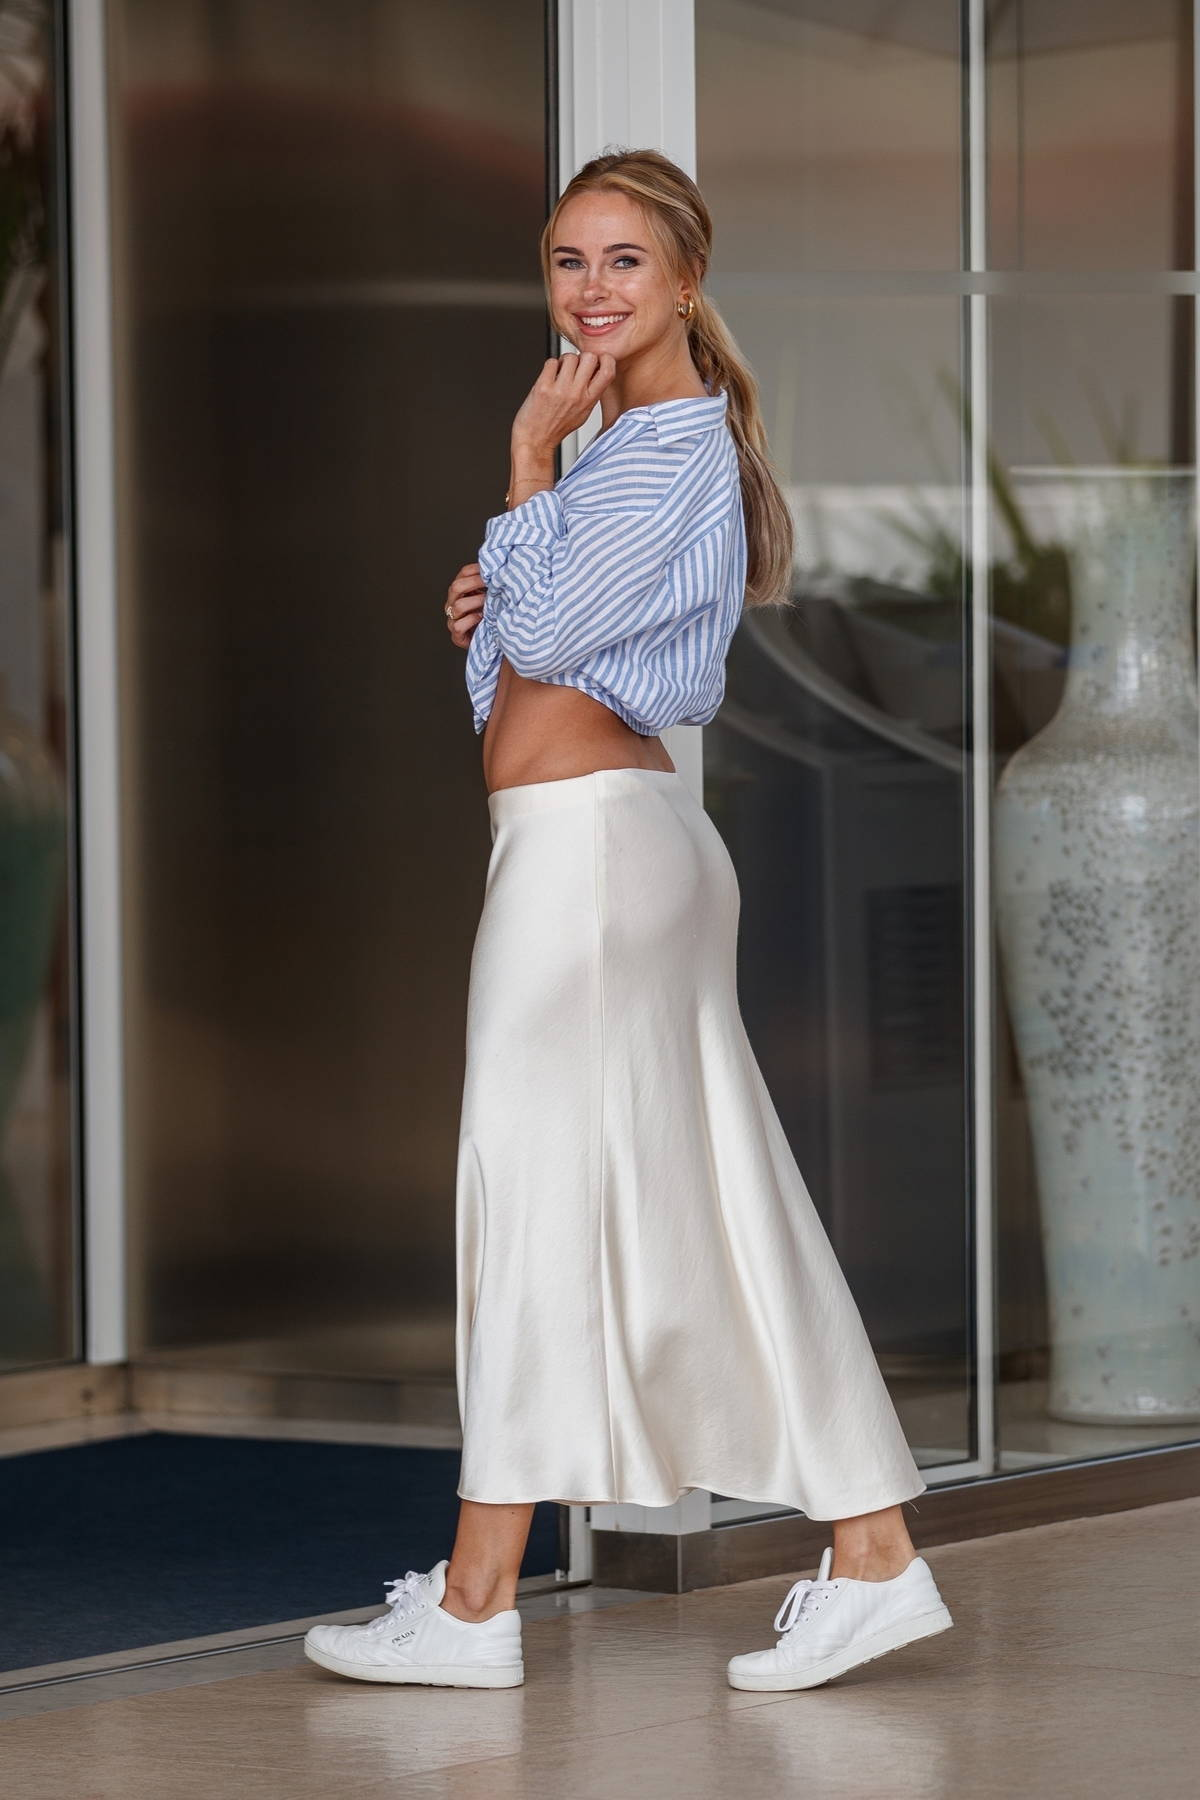 Kimberley Garner flaunts her perfectly toned abs at the Martinez Hotel during the 74th Cannes Film Festival in Cannes, France